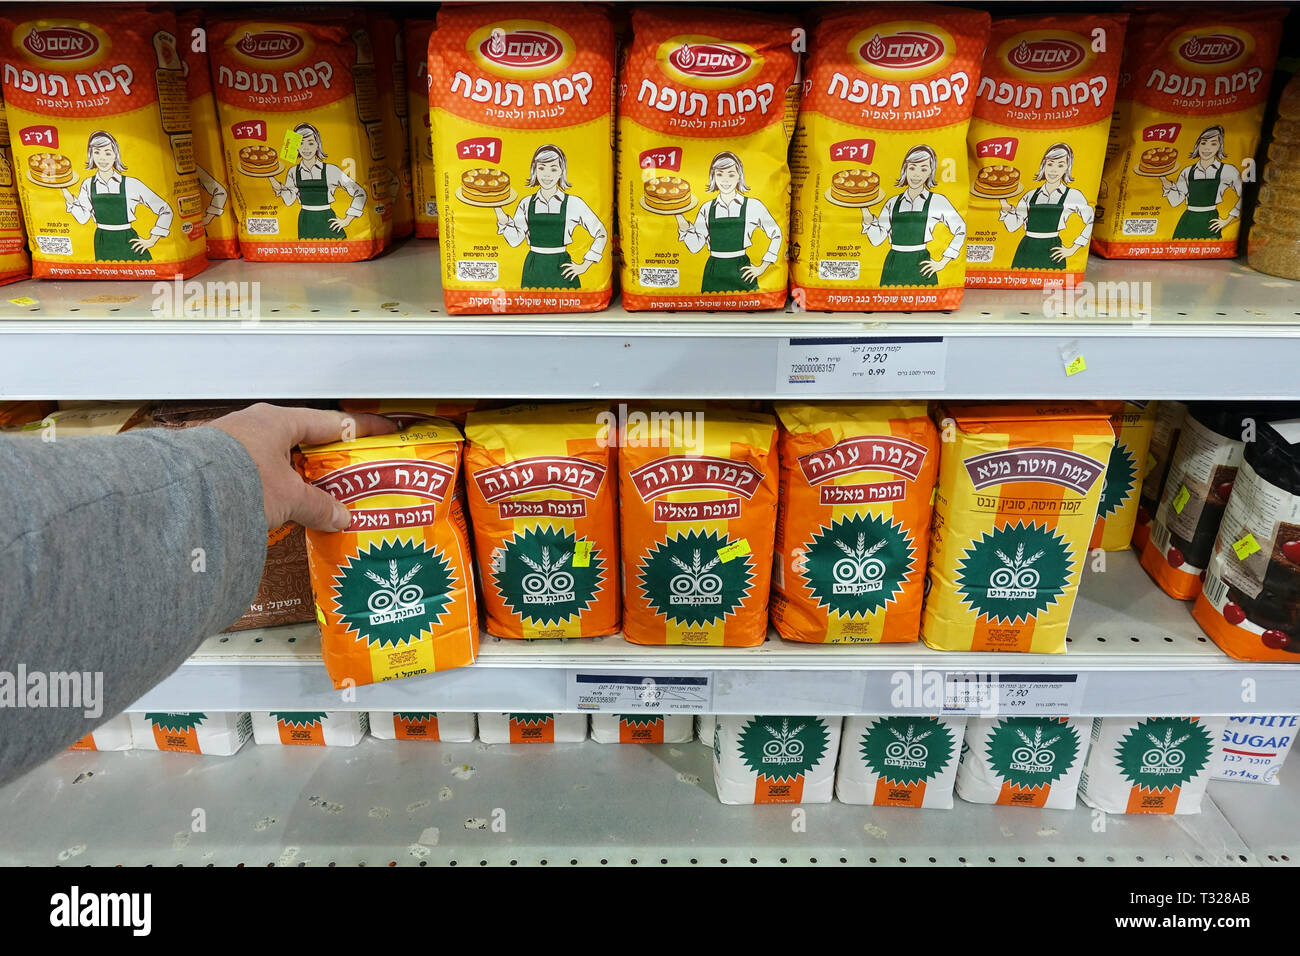 Shelves with Self Rising Flour packings in a supermarket - Stock Image